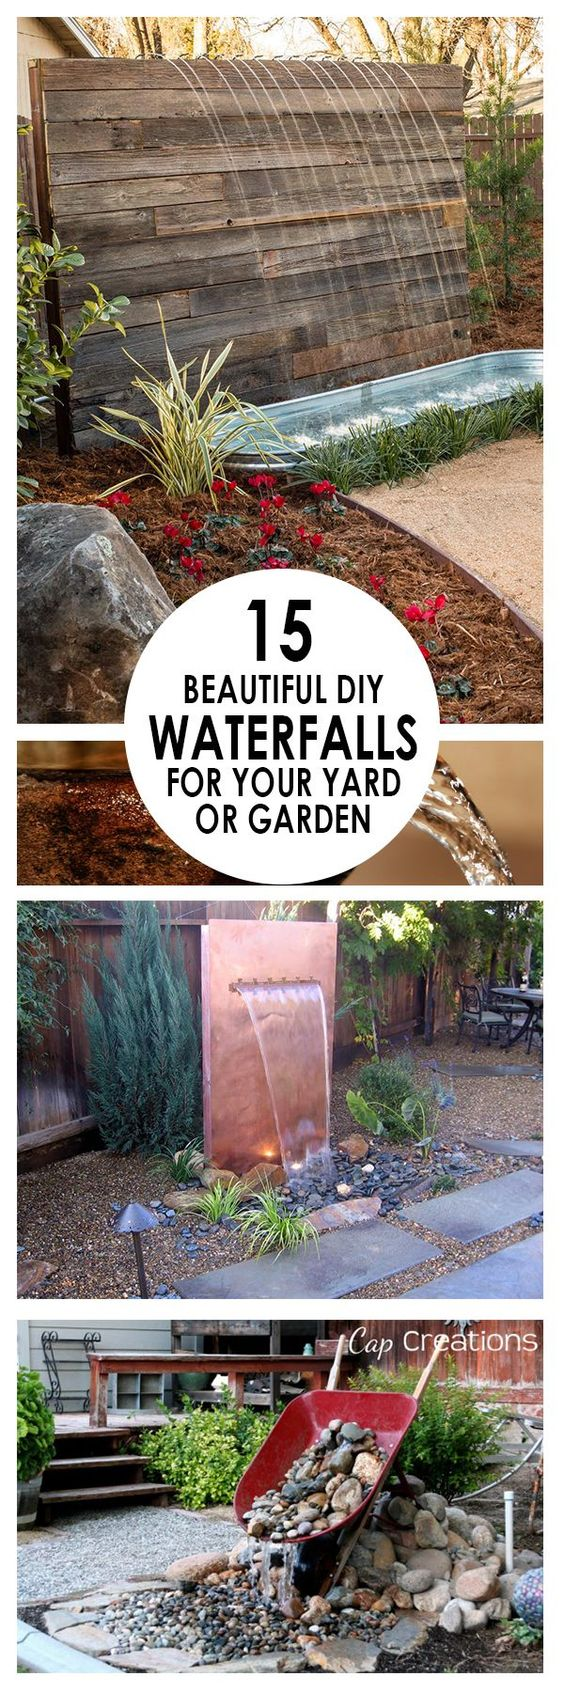 15-Beautiful-DIY-Waterfalls-for-Your-Yard-or-Garden-1.jpg 600×1,800 pixels